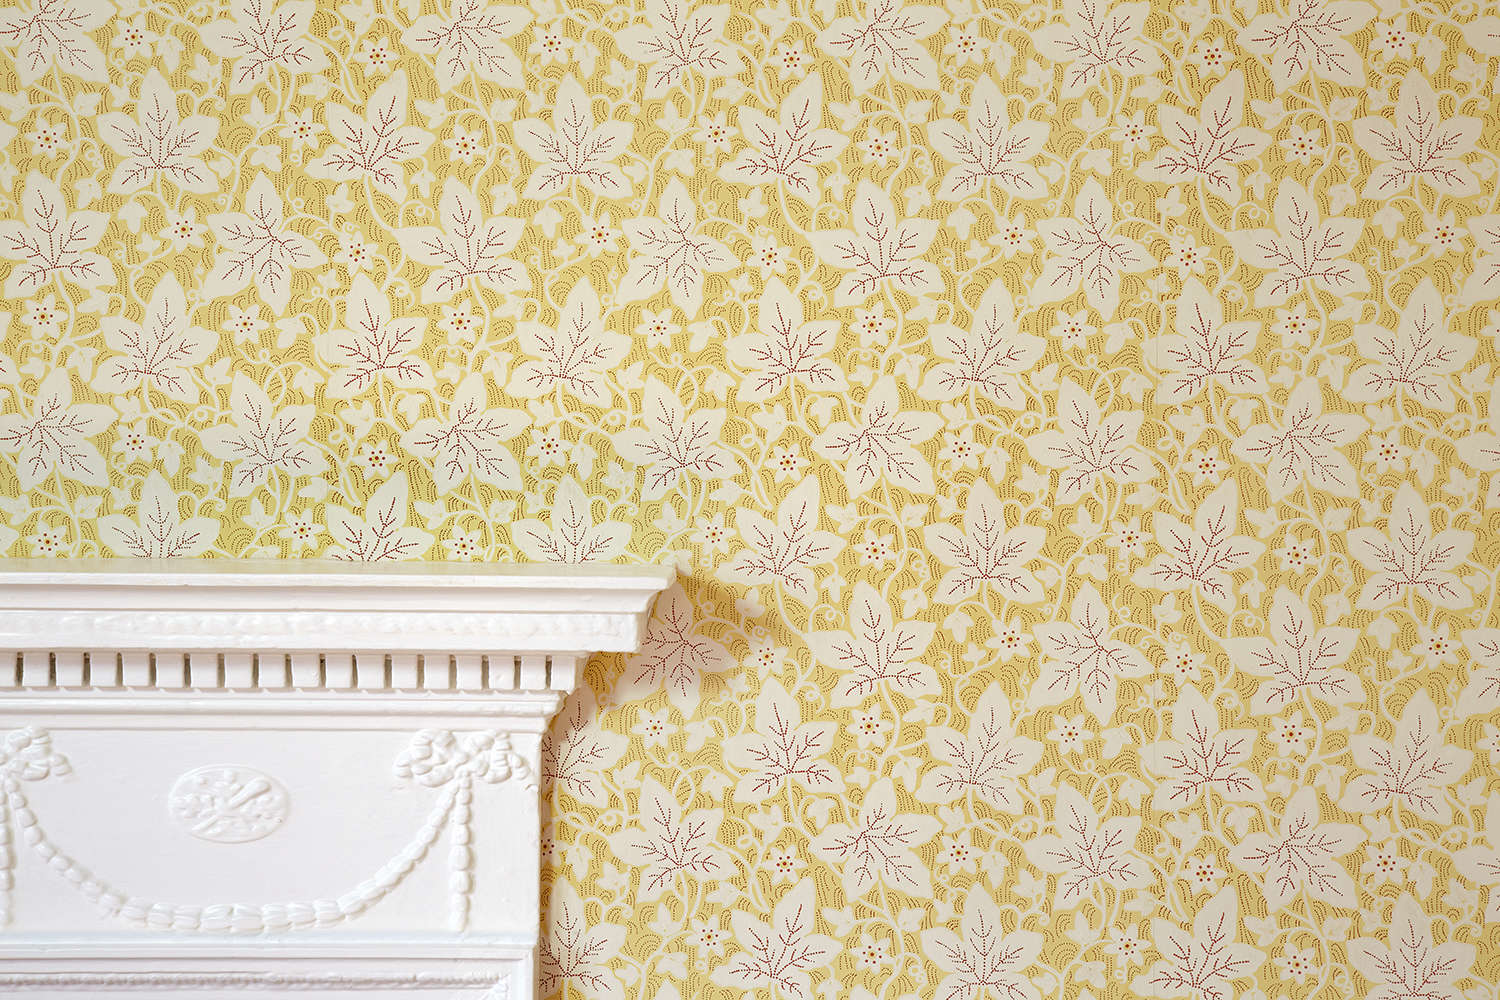 Chawton Vine wallpaper in the Drawing Room at Jane Austen's House